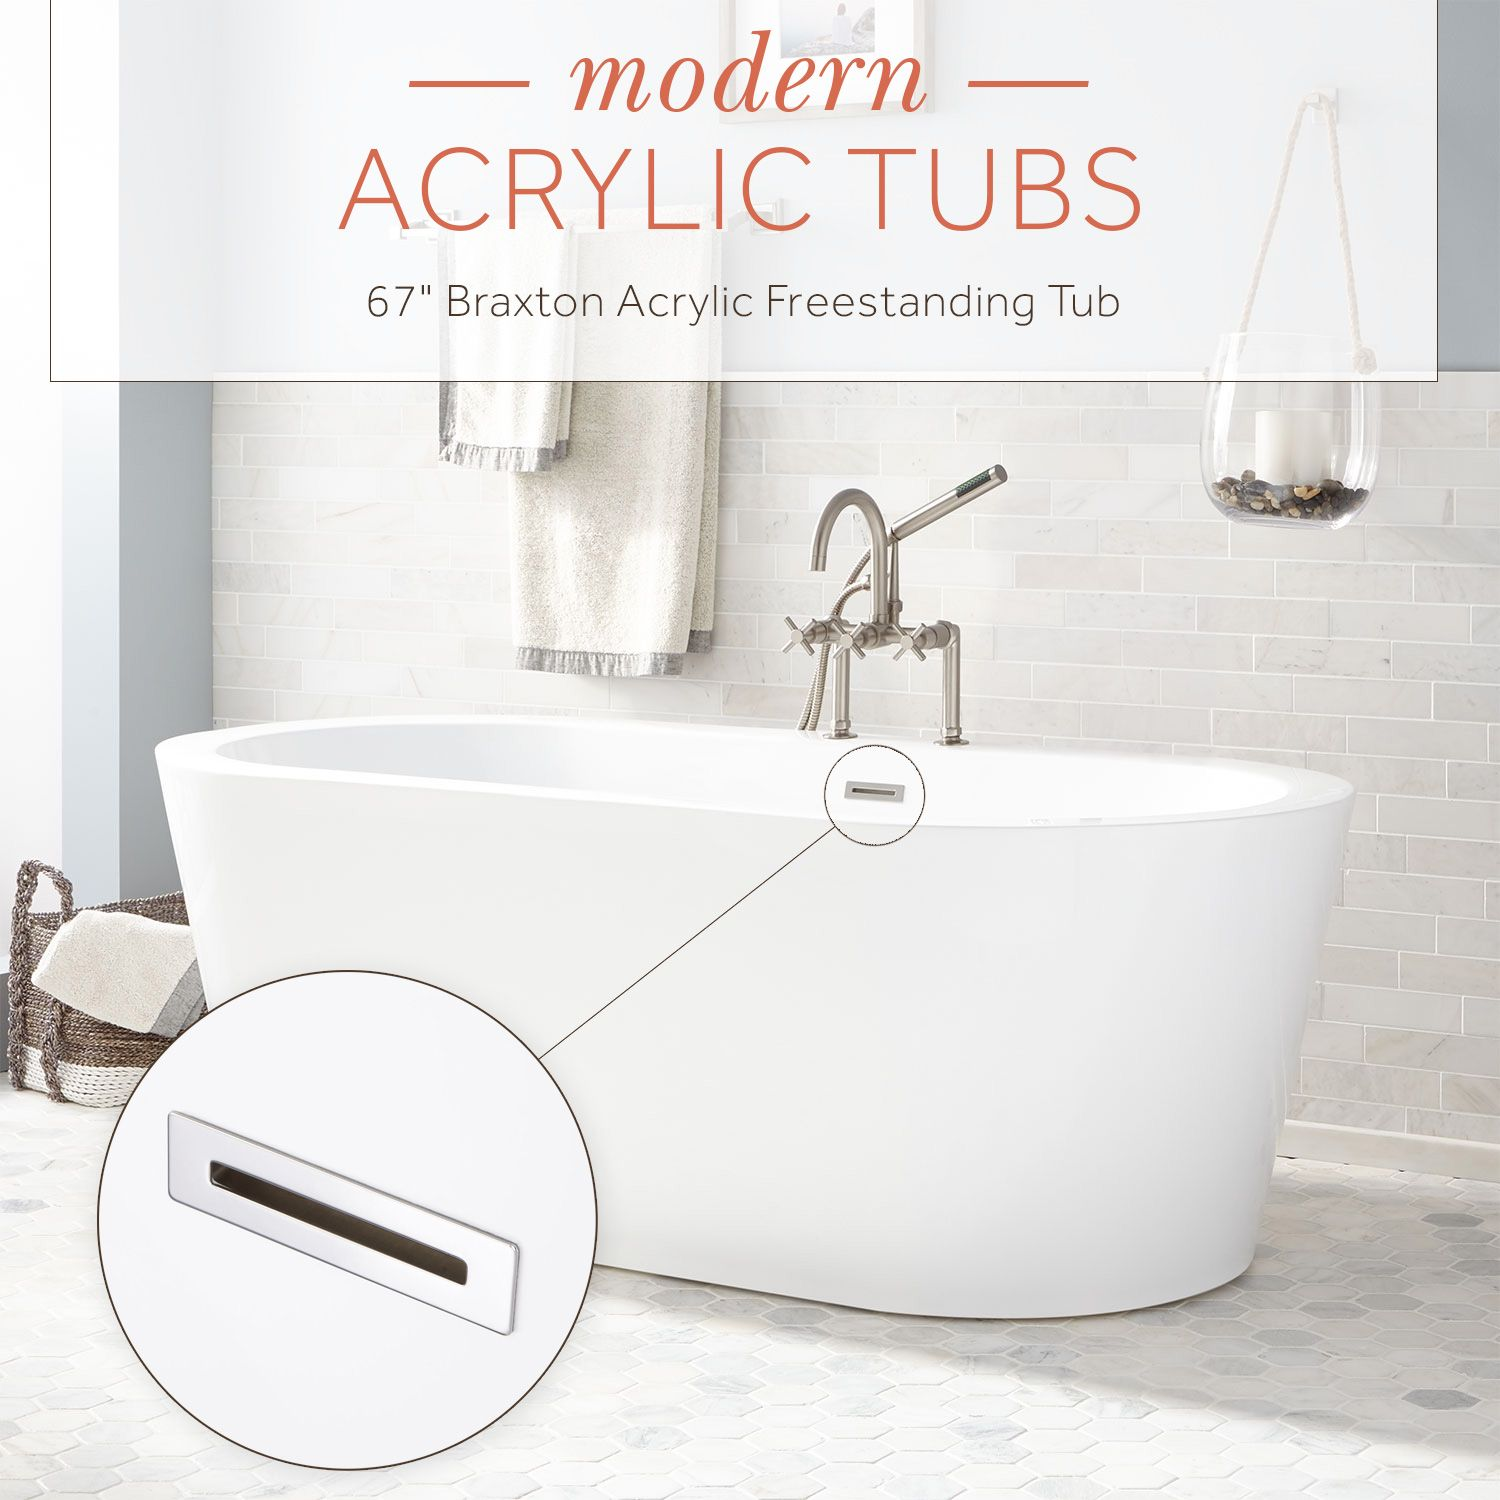 For a minimalist design, the Braxton Acrylic Freestanding Tub is a ...